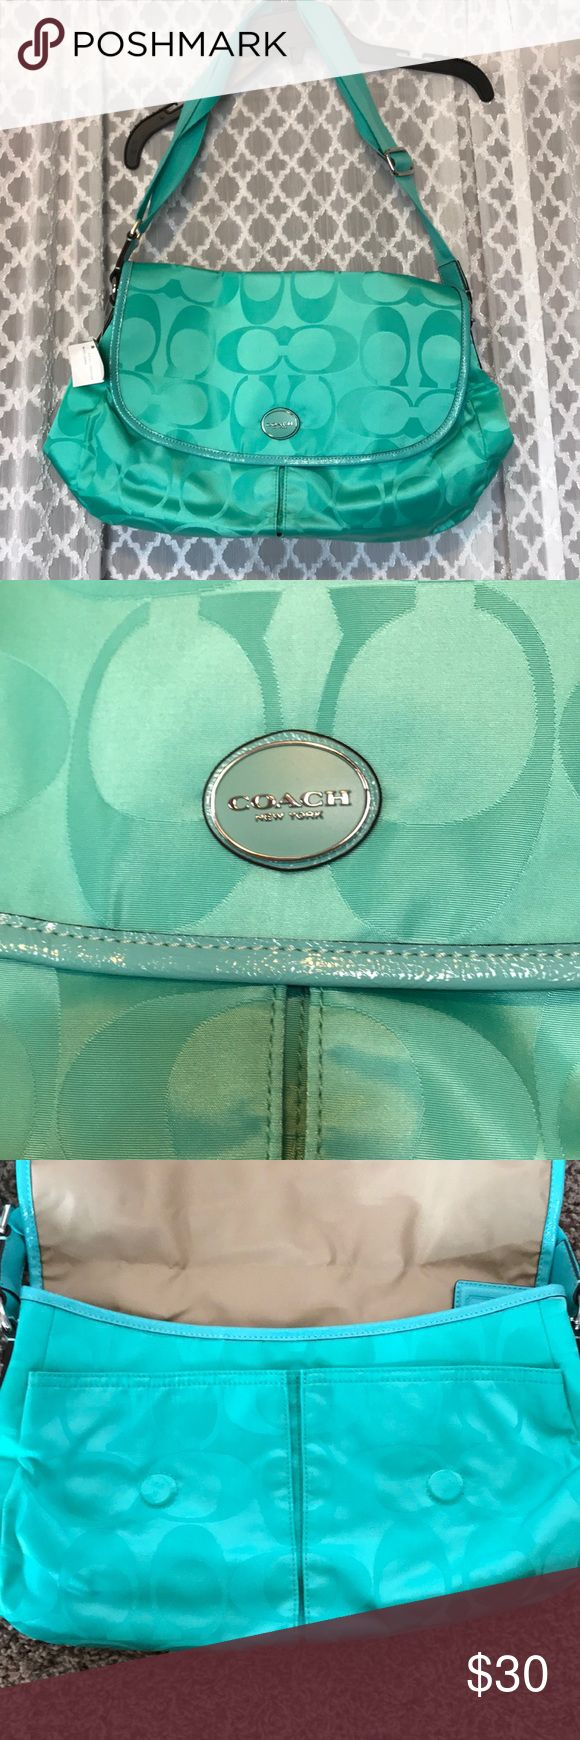 Coach messenger bag Aqua color coach messenger bag. Older version but very cute. Multiple pockets and adjustable straps. Coach Bags Mini Bags